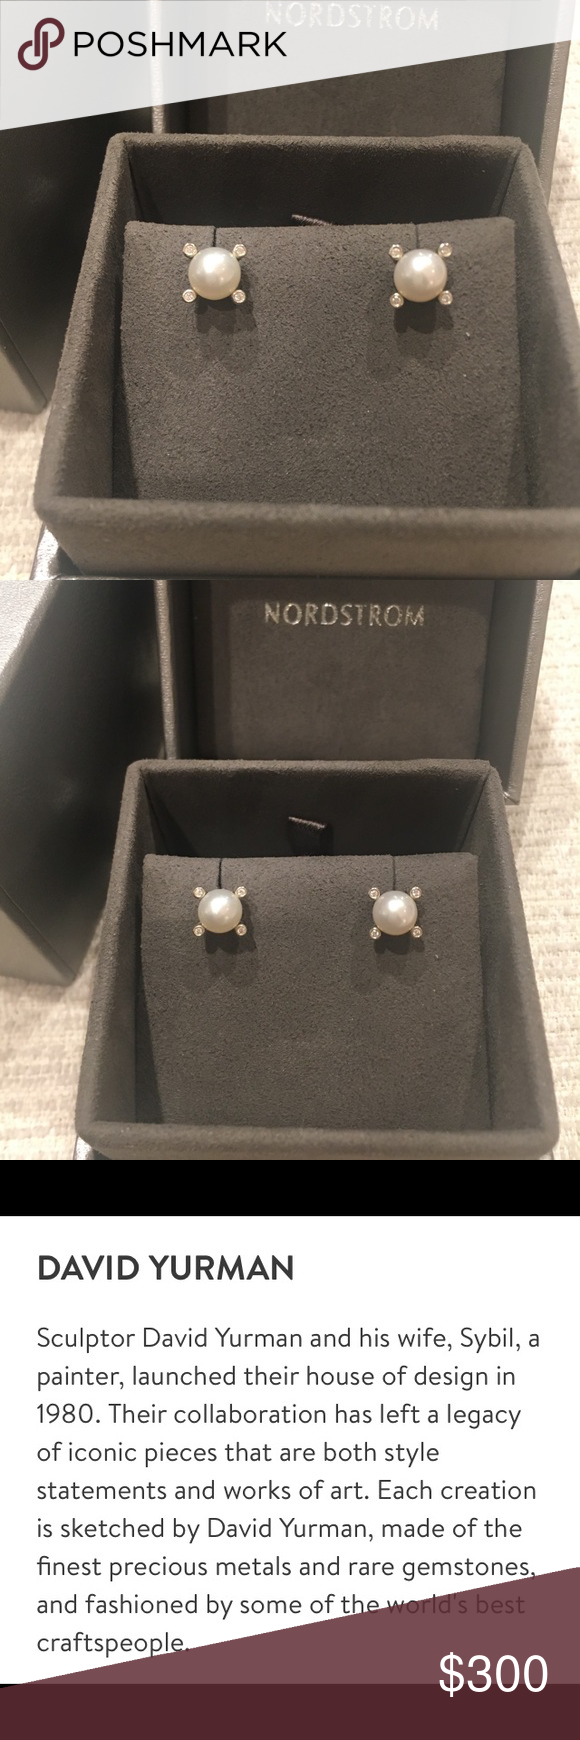 d12be1795779 David Yurman Small Pearl Earrings with Diamonds David Yurman Small Pearl  Earrings with Diamonds. Never worn. For sale at Nordstrom now for  350 plus  tax.